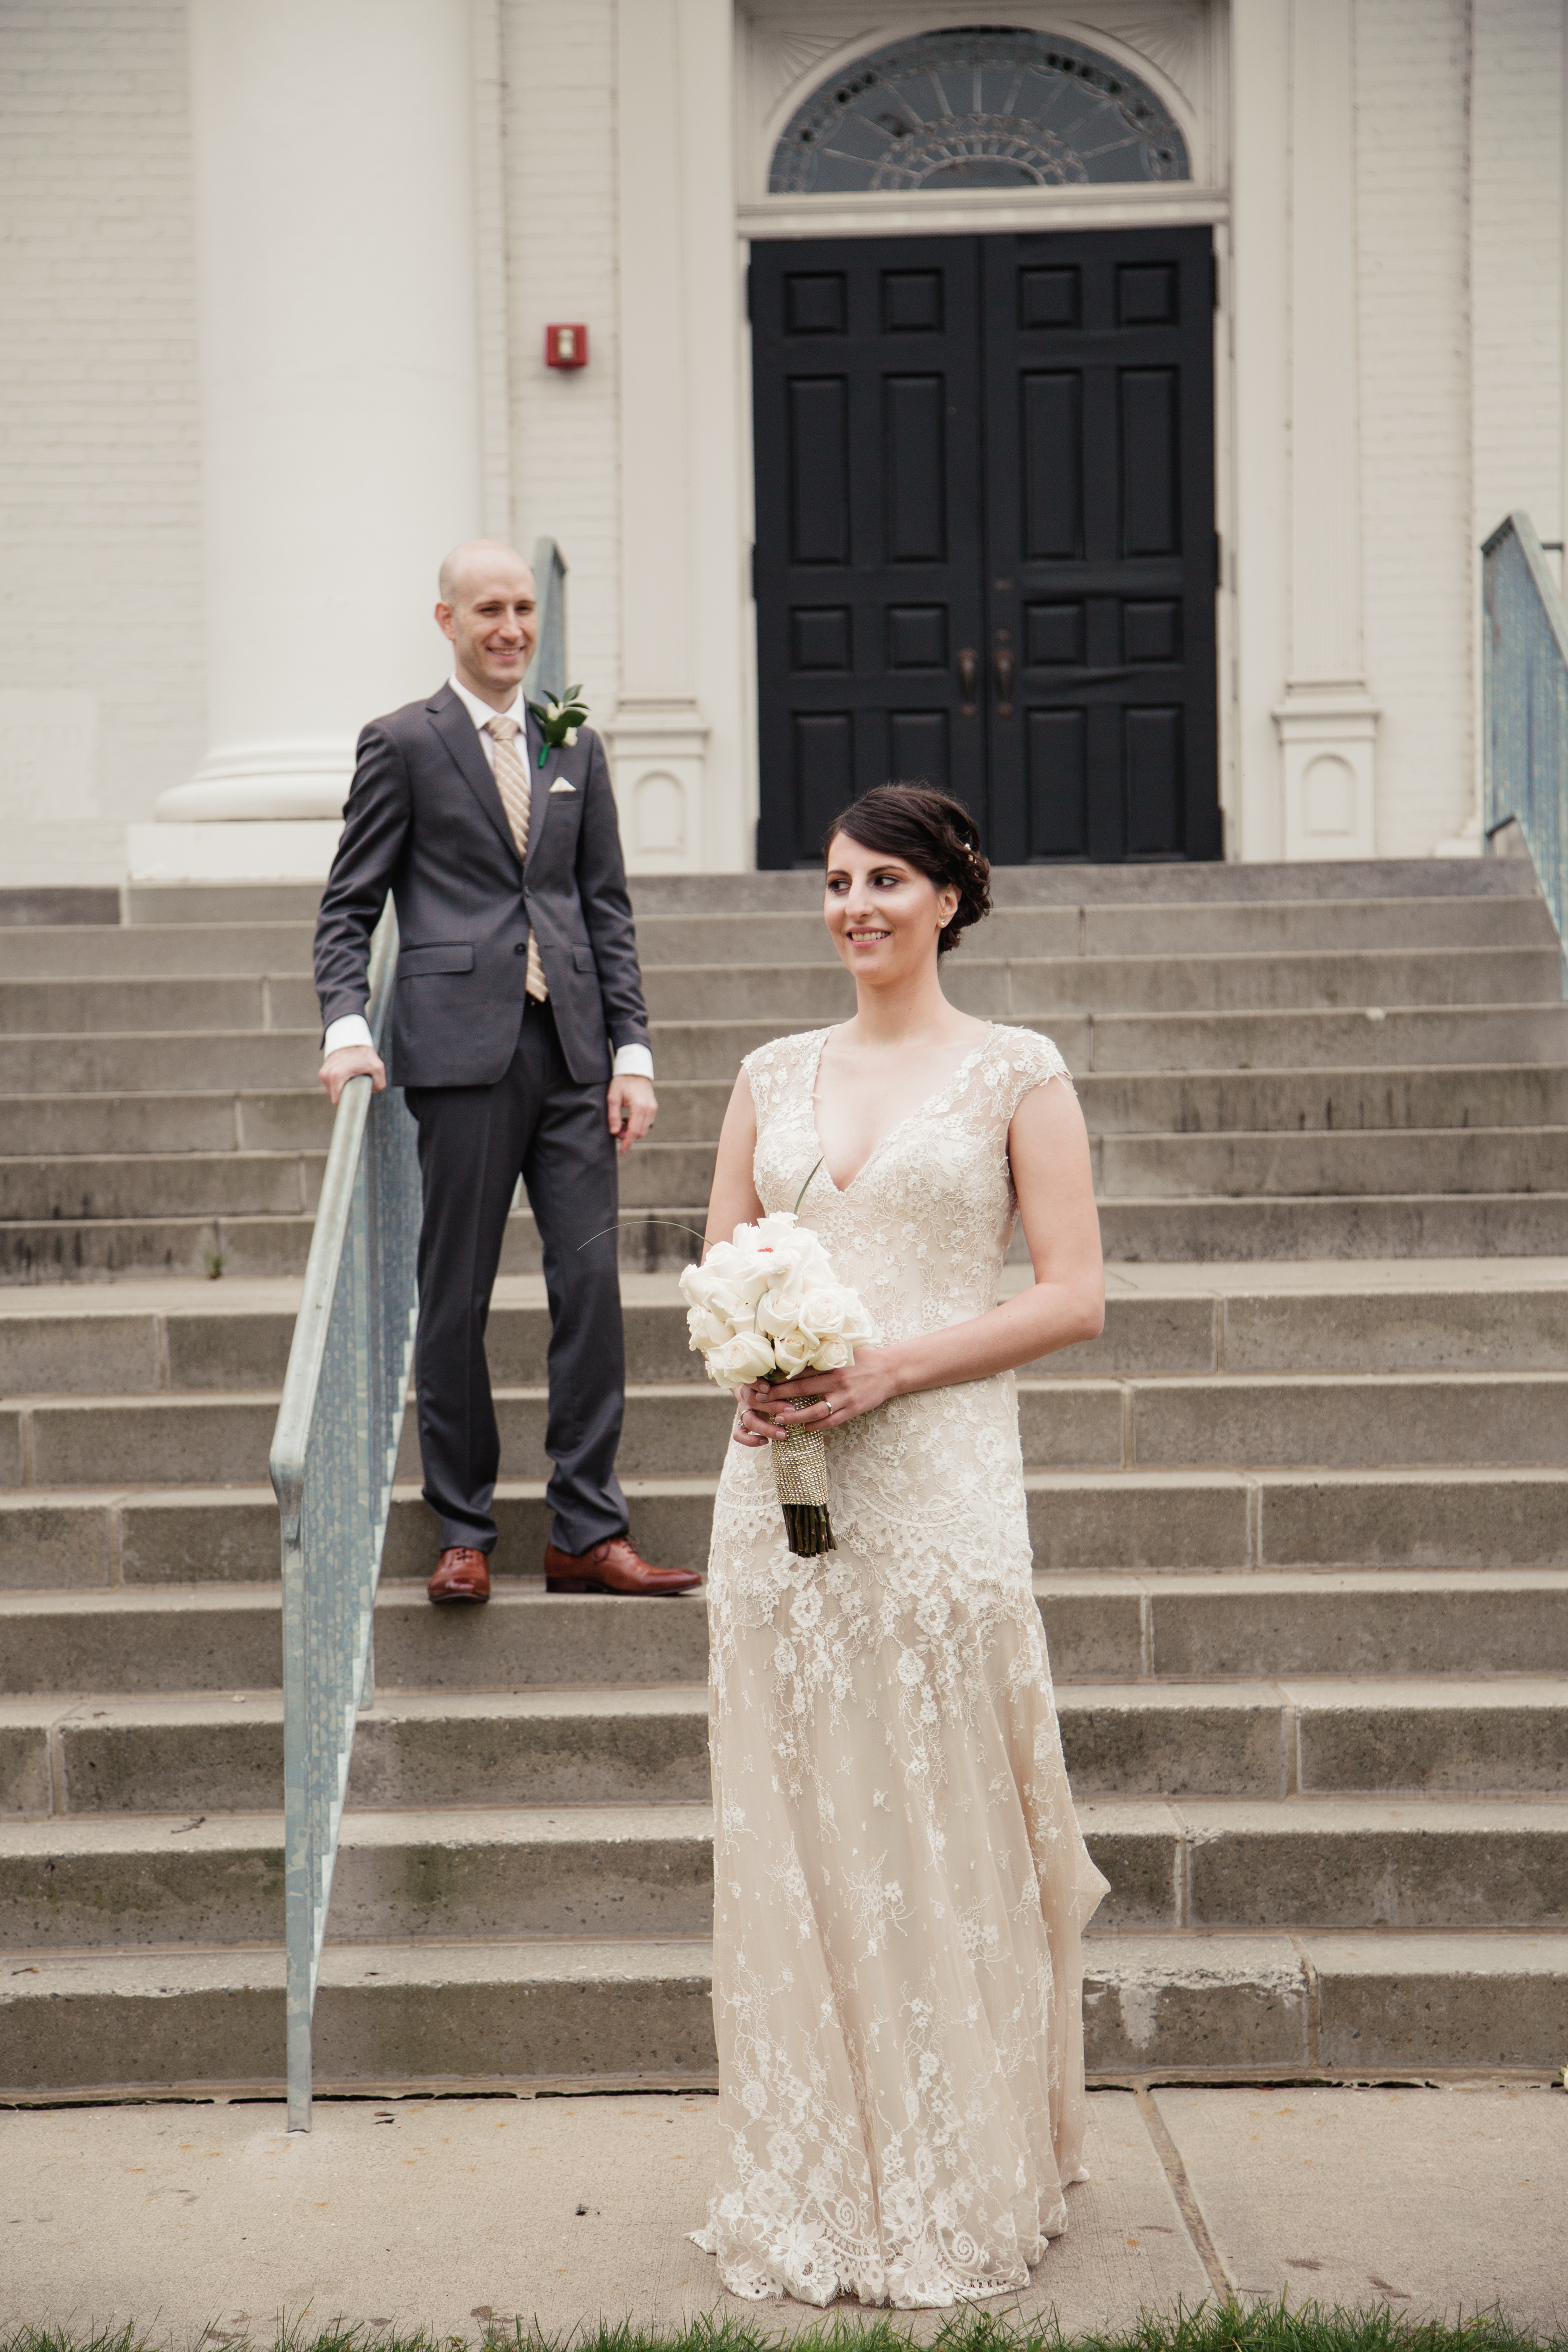 Wedding Photography in The First Church of Christ